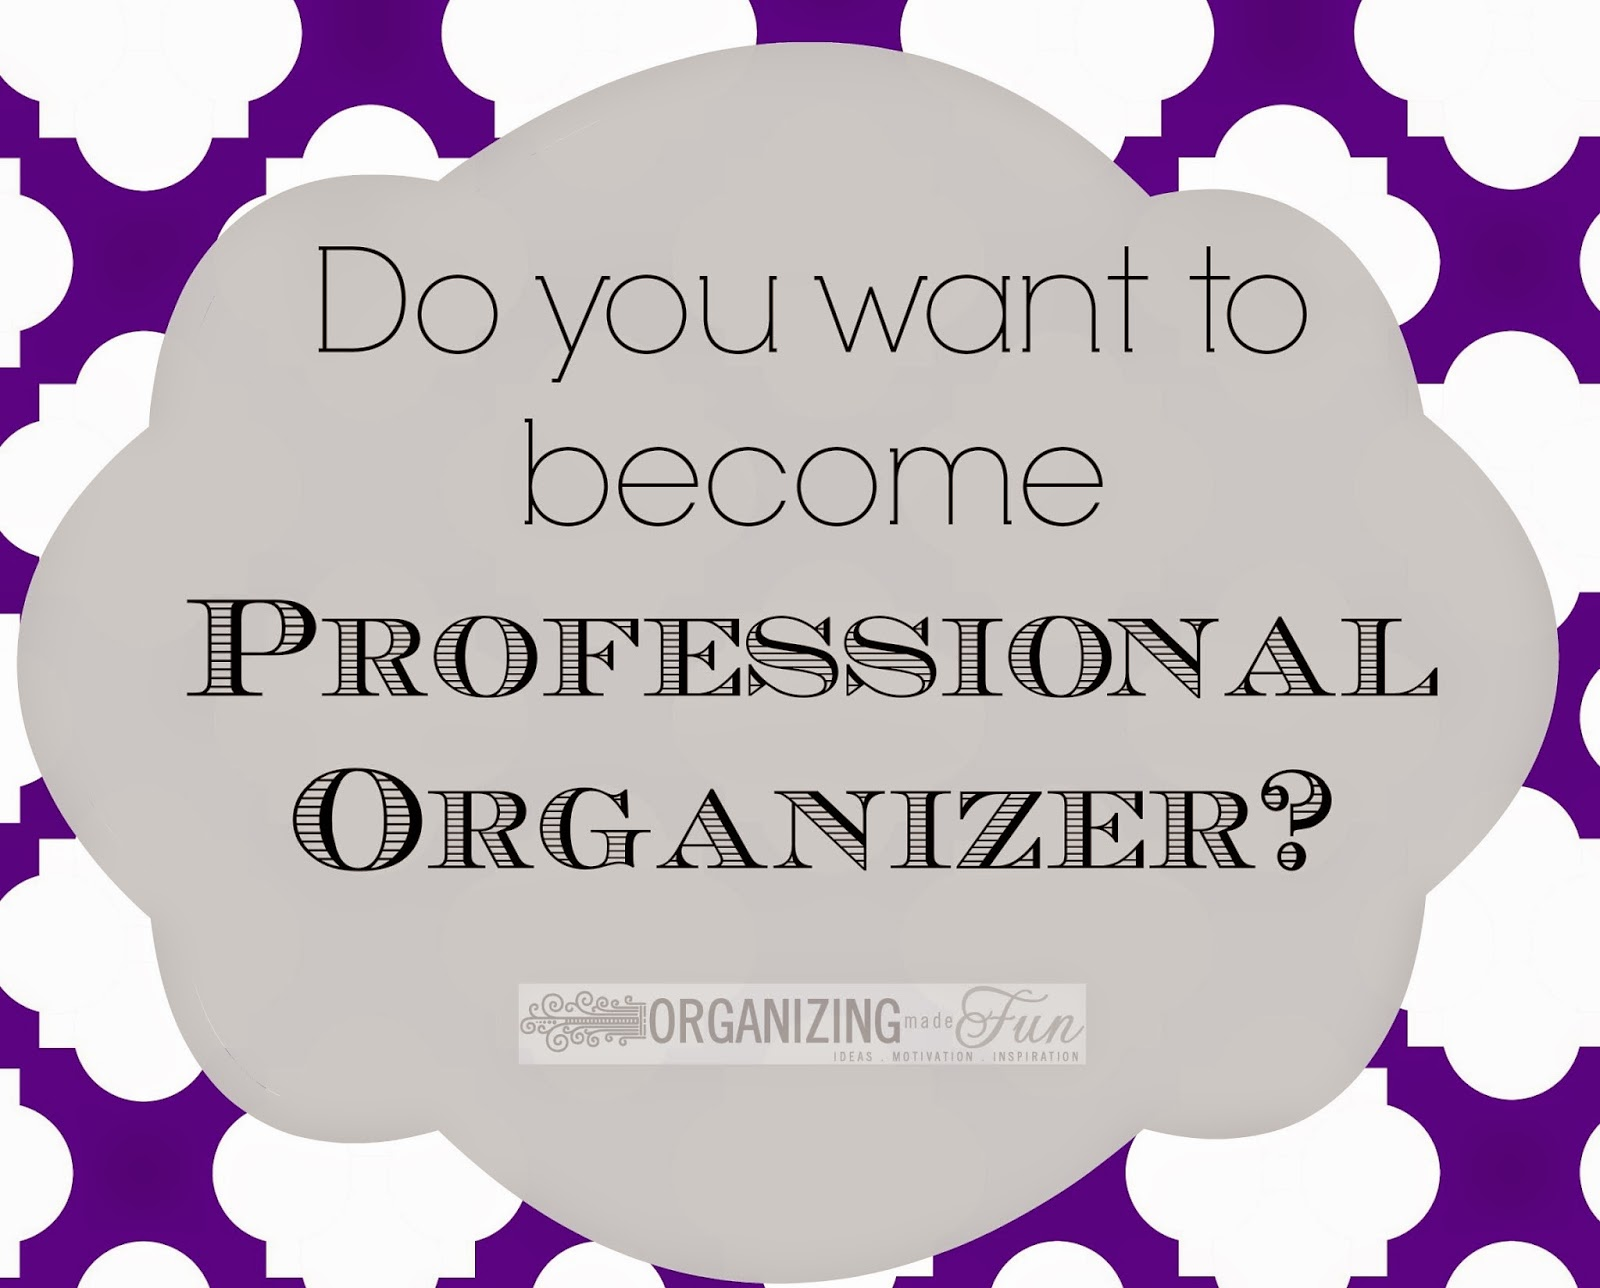 Do you want to become a professional organizer? OrganizingMadeFun.com